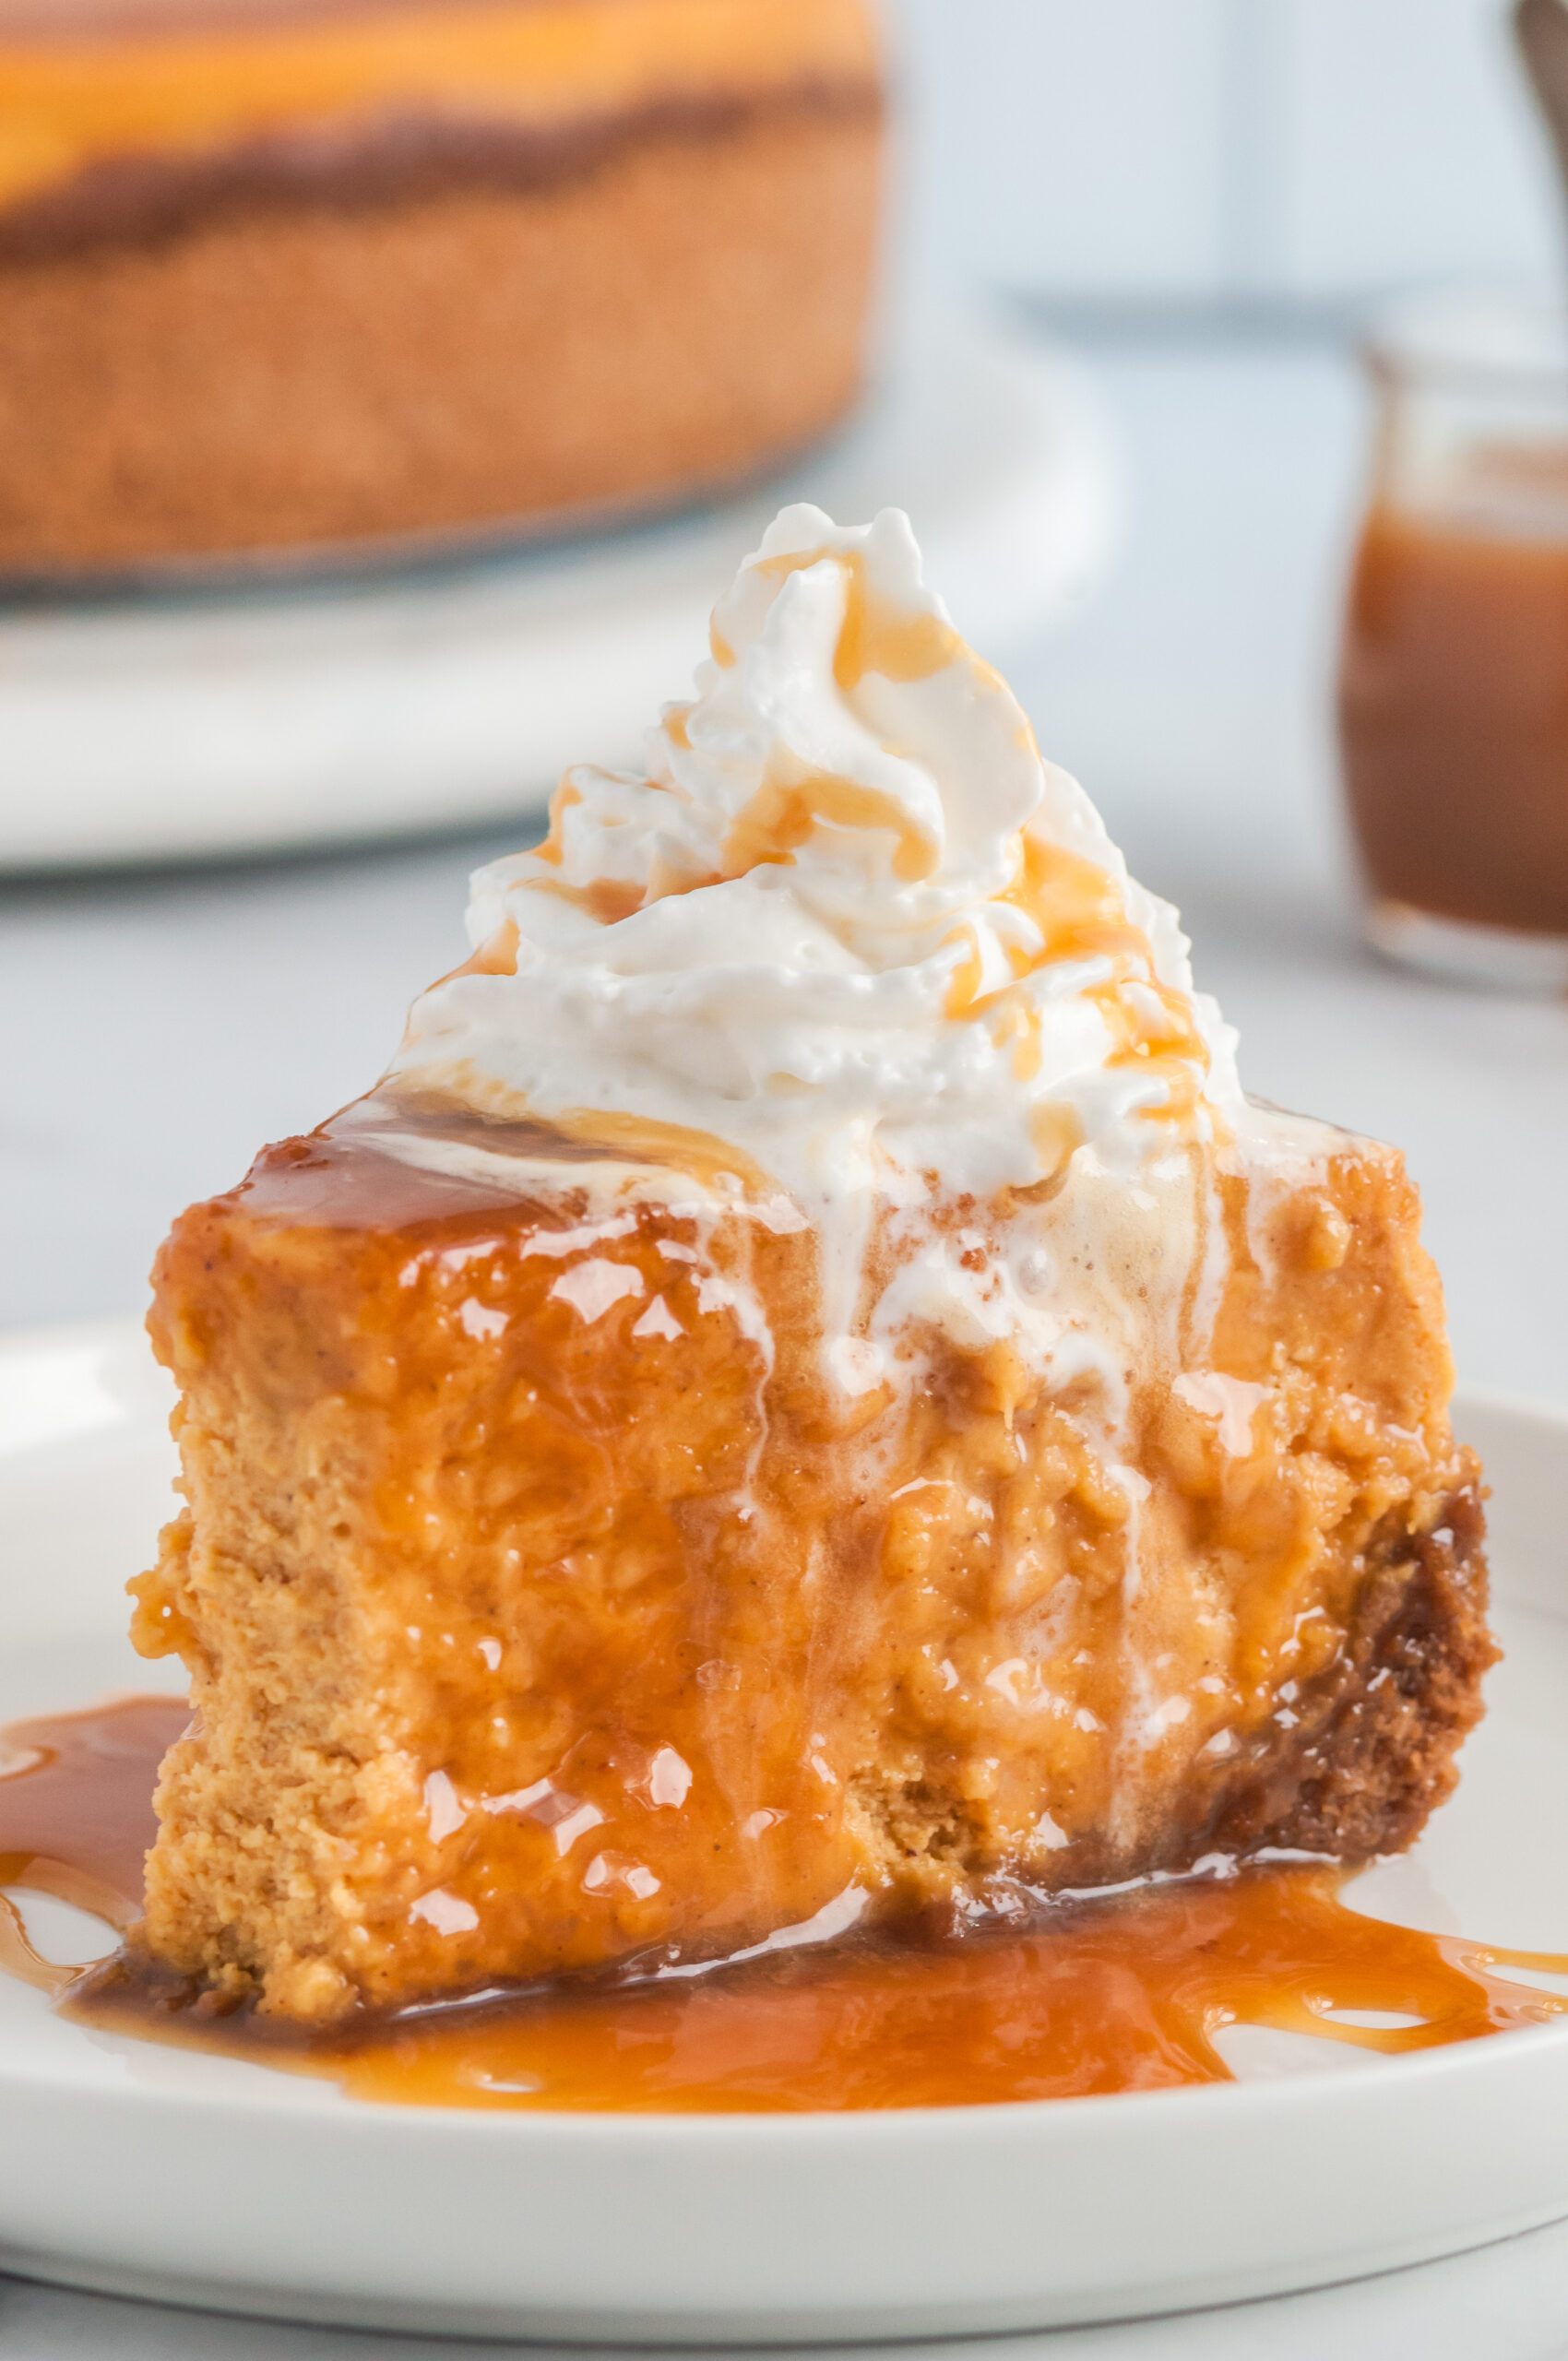 plated slice of pumpkin cheesecake with caramel sauce and whipped cream on top